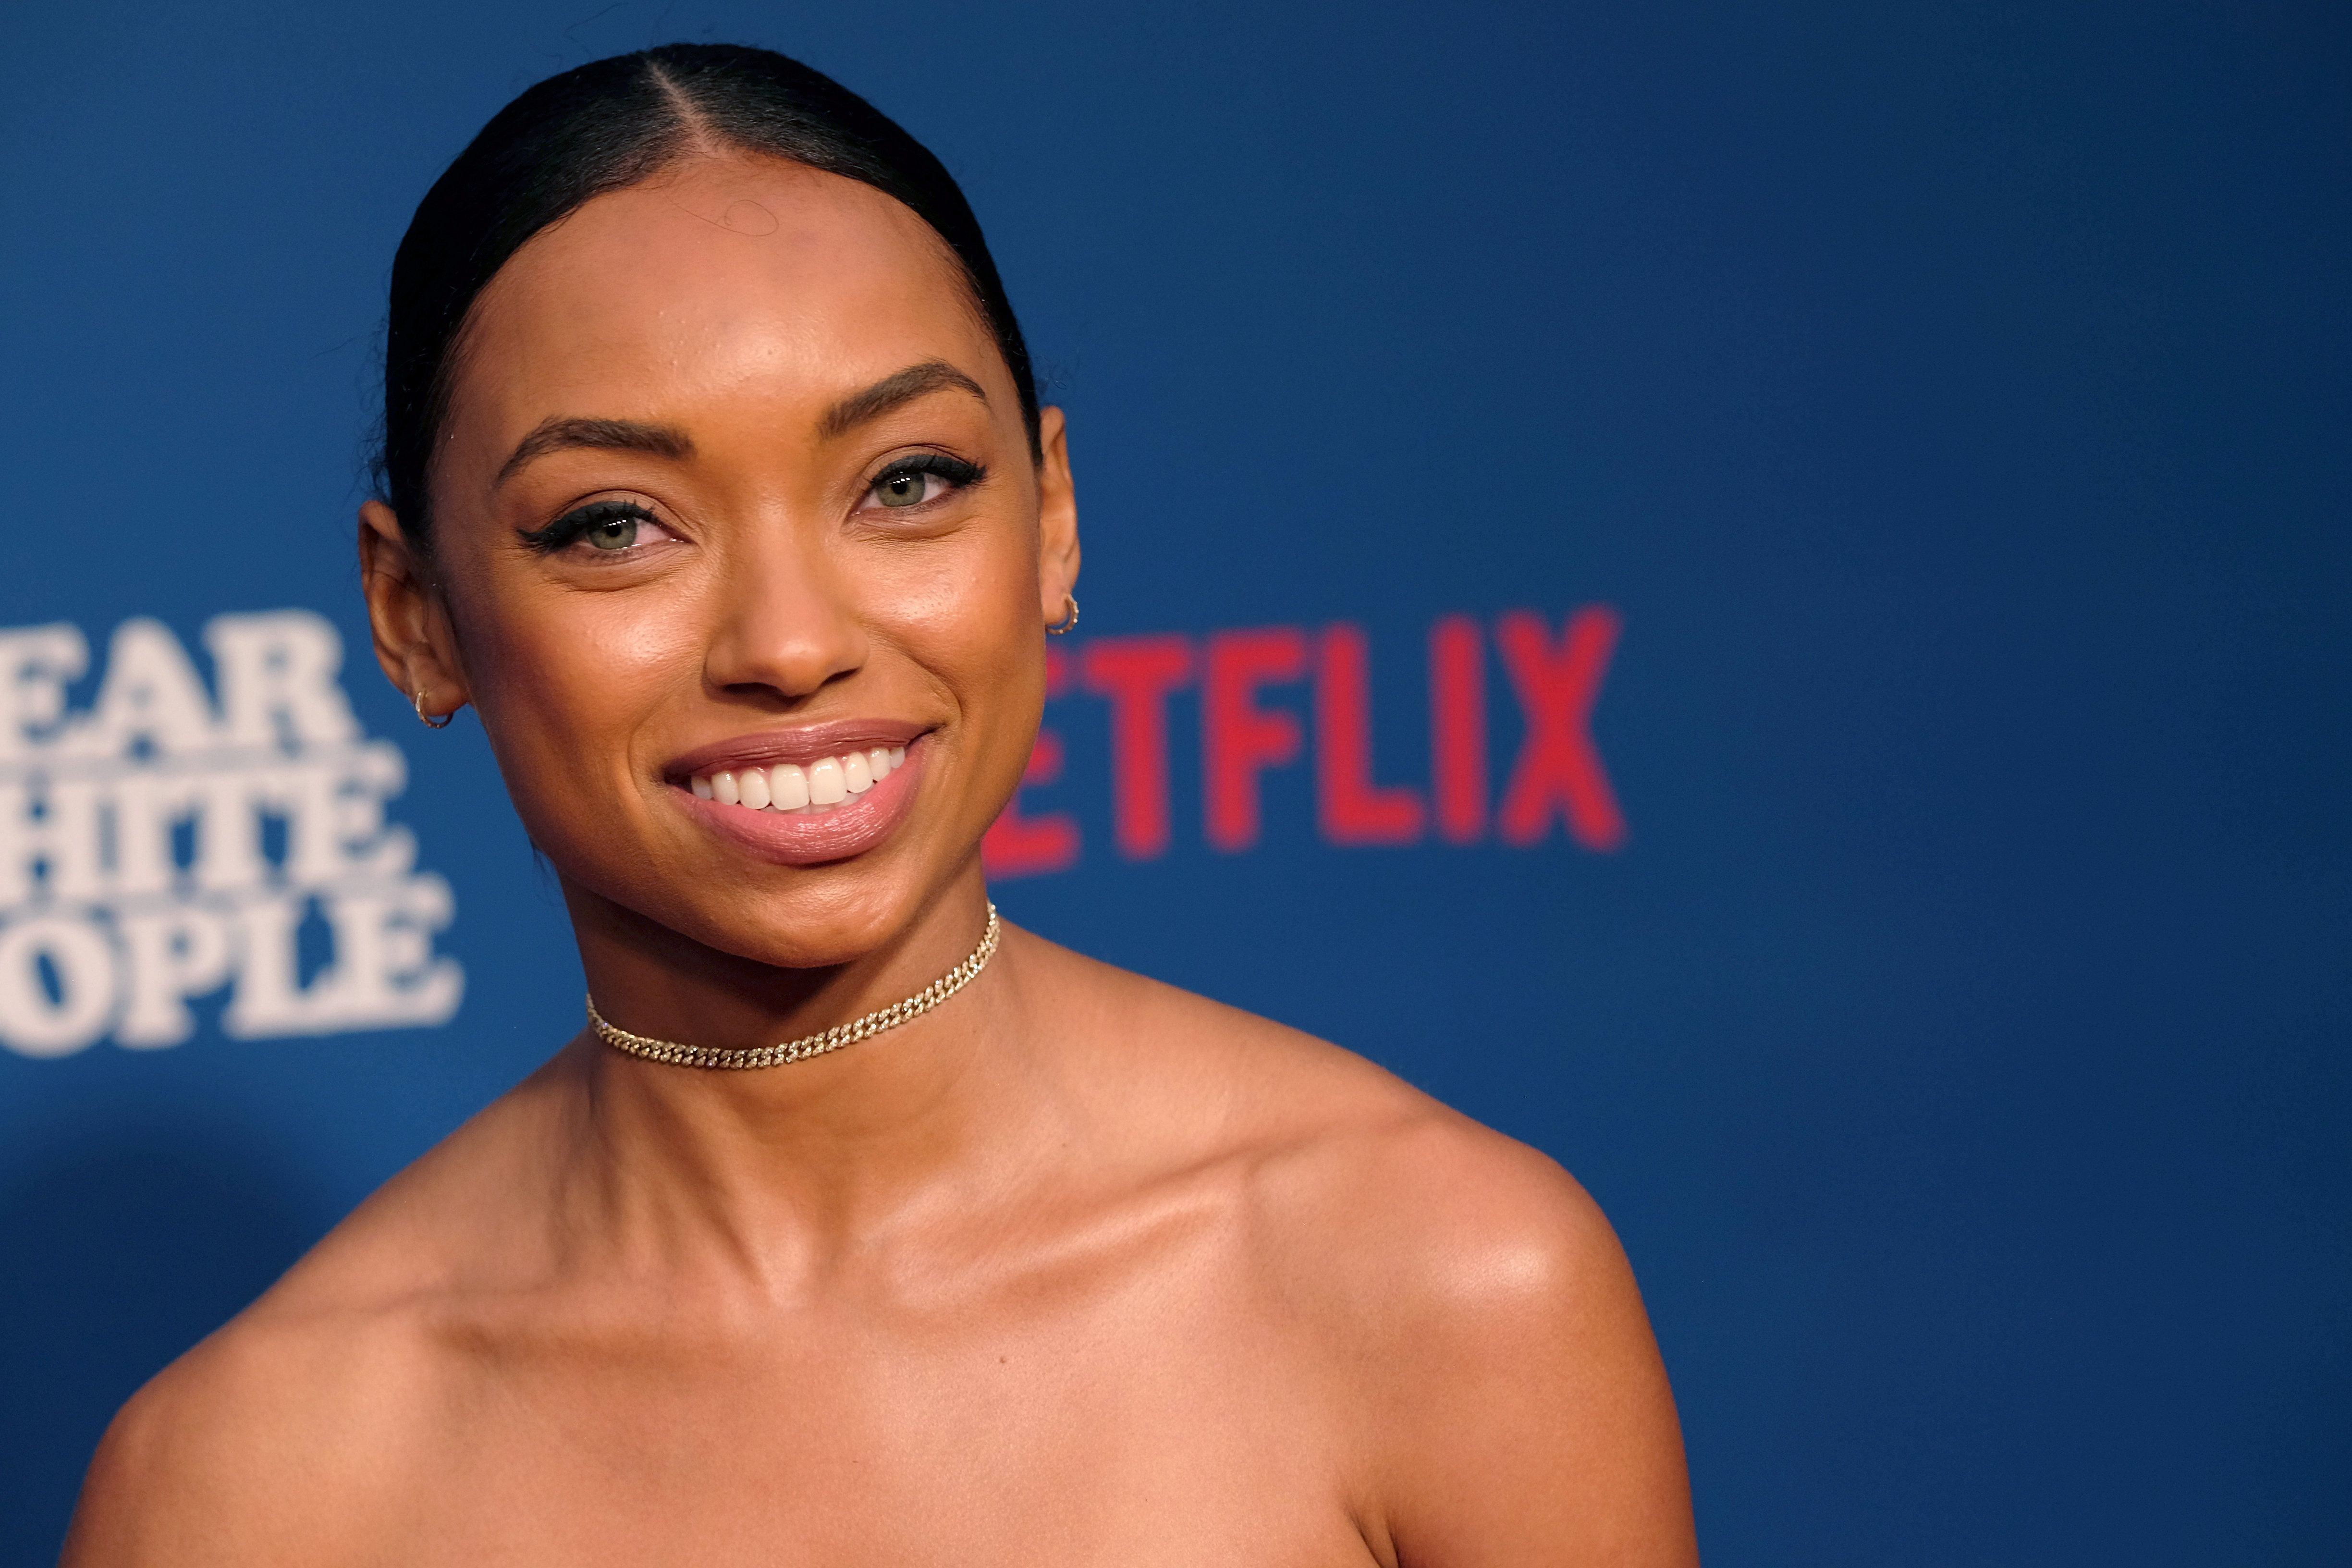 LOS ANGELES, CA - APRIL 27:  Actress Logan Browning attends the premiere of Netflix's 'Dear White People' at Downtown Independent on April 27, 2017 in Los Angeles, California.  (Photo by Matthew Simmons/Getty Images)